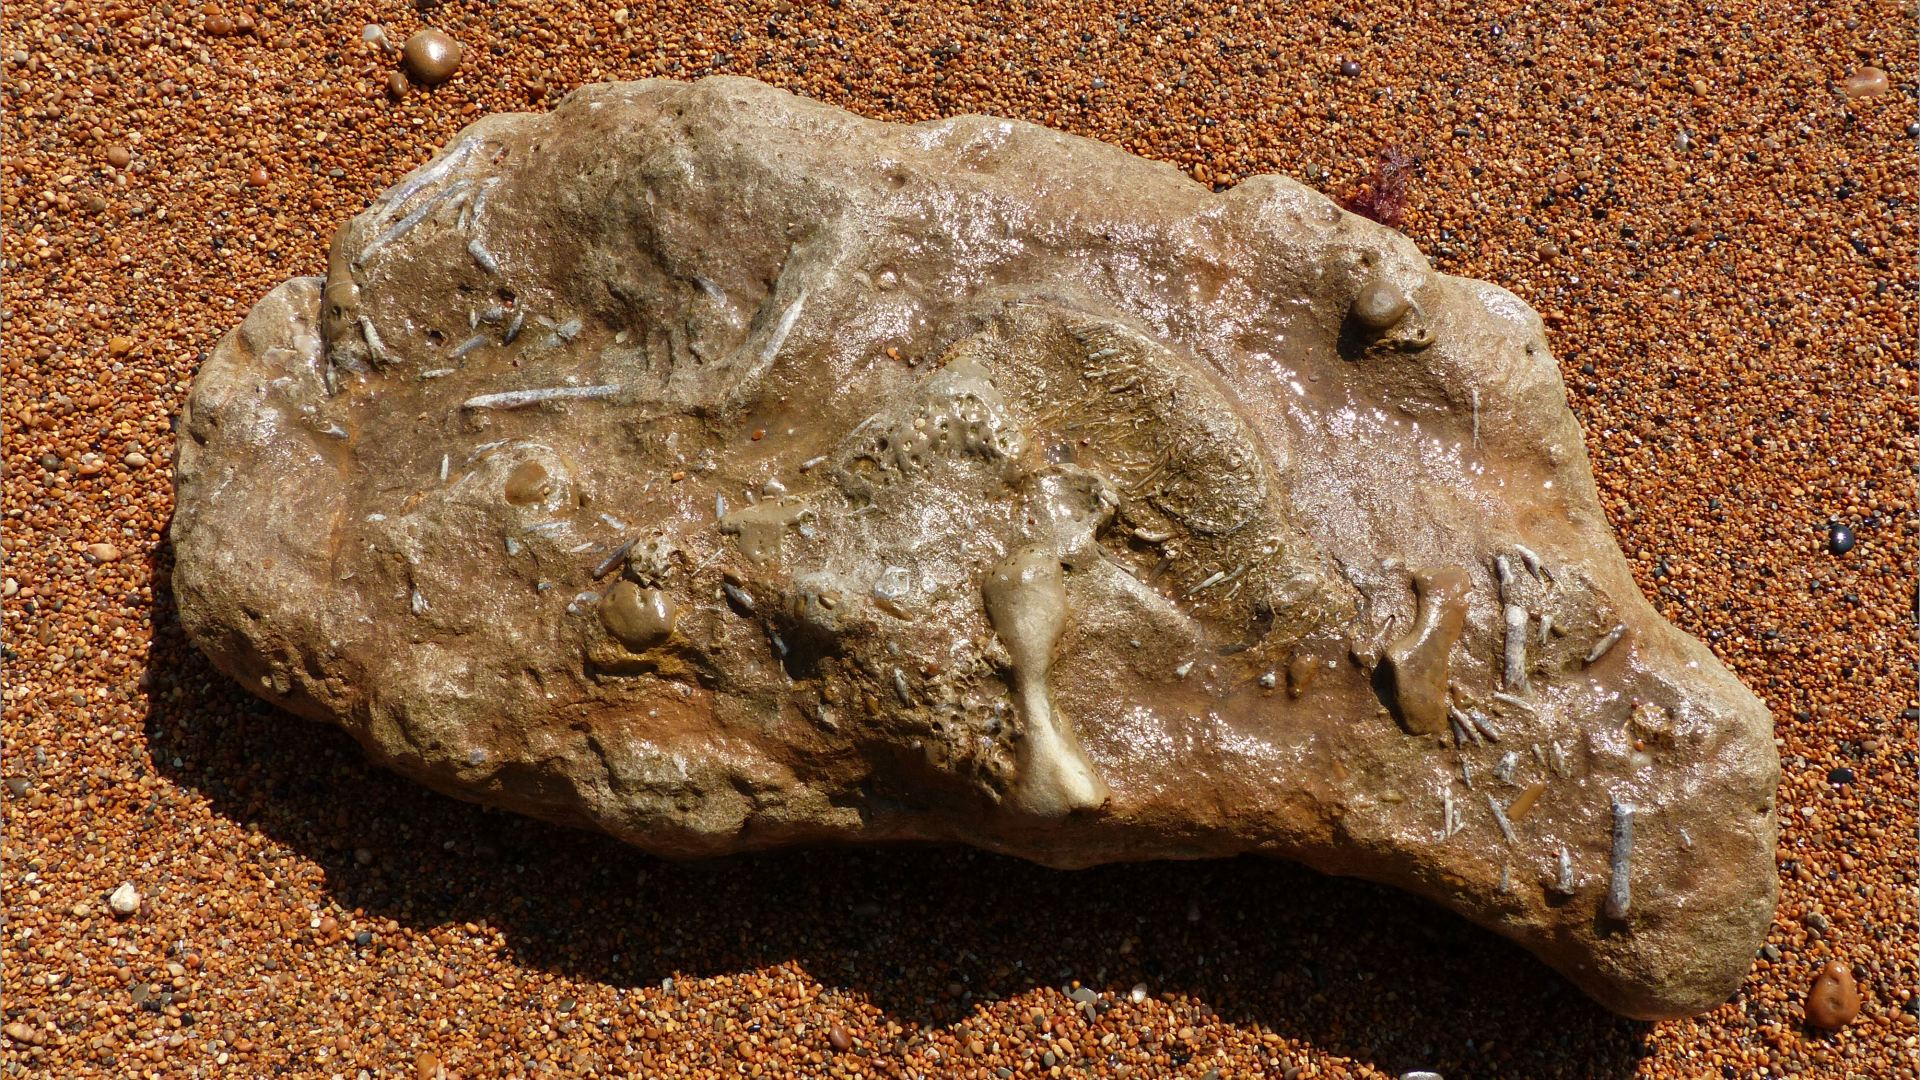 Beach boulder with fossils in wet shingle on the beach